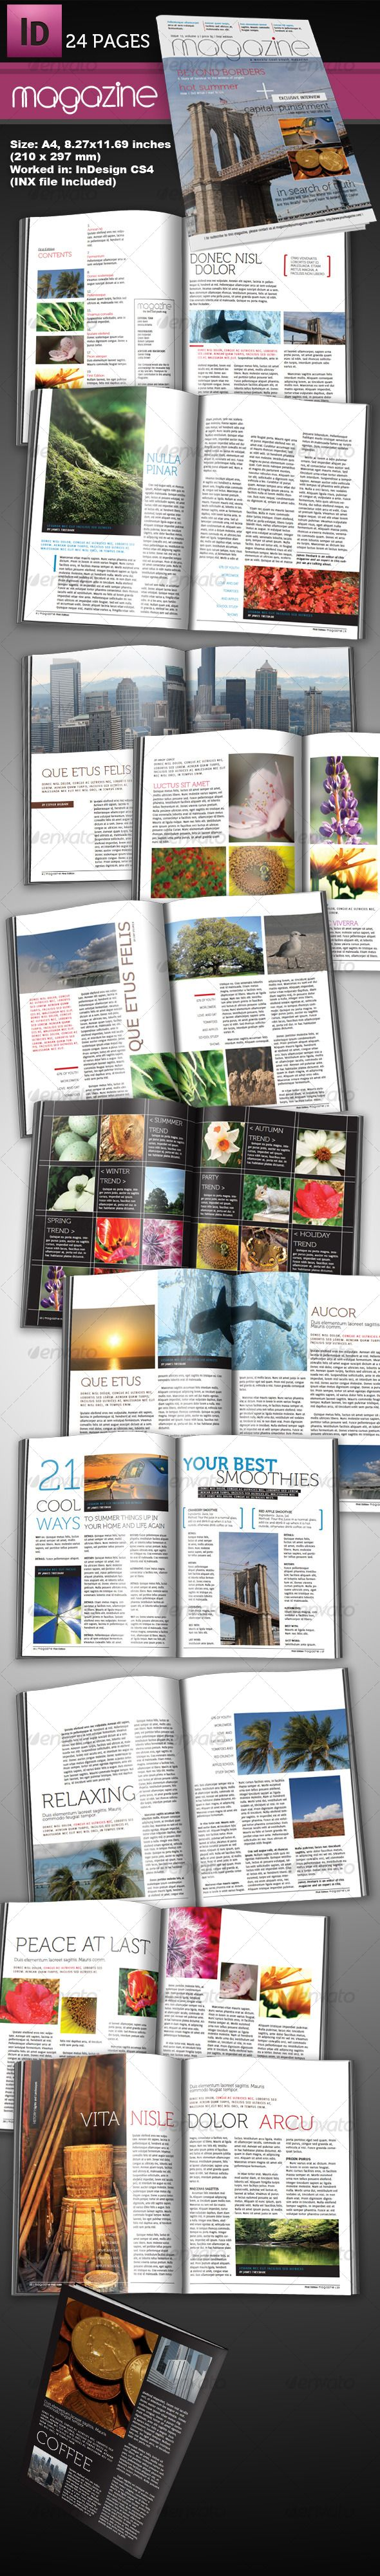 Type that crosses over image. 24 Page InDesign Magazine A4 - GraphicRiver Item for Sale